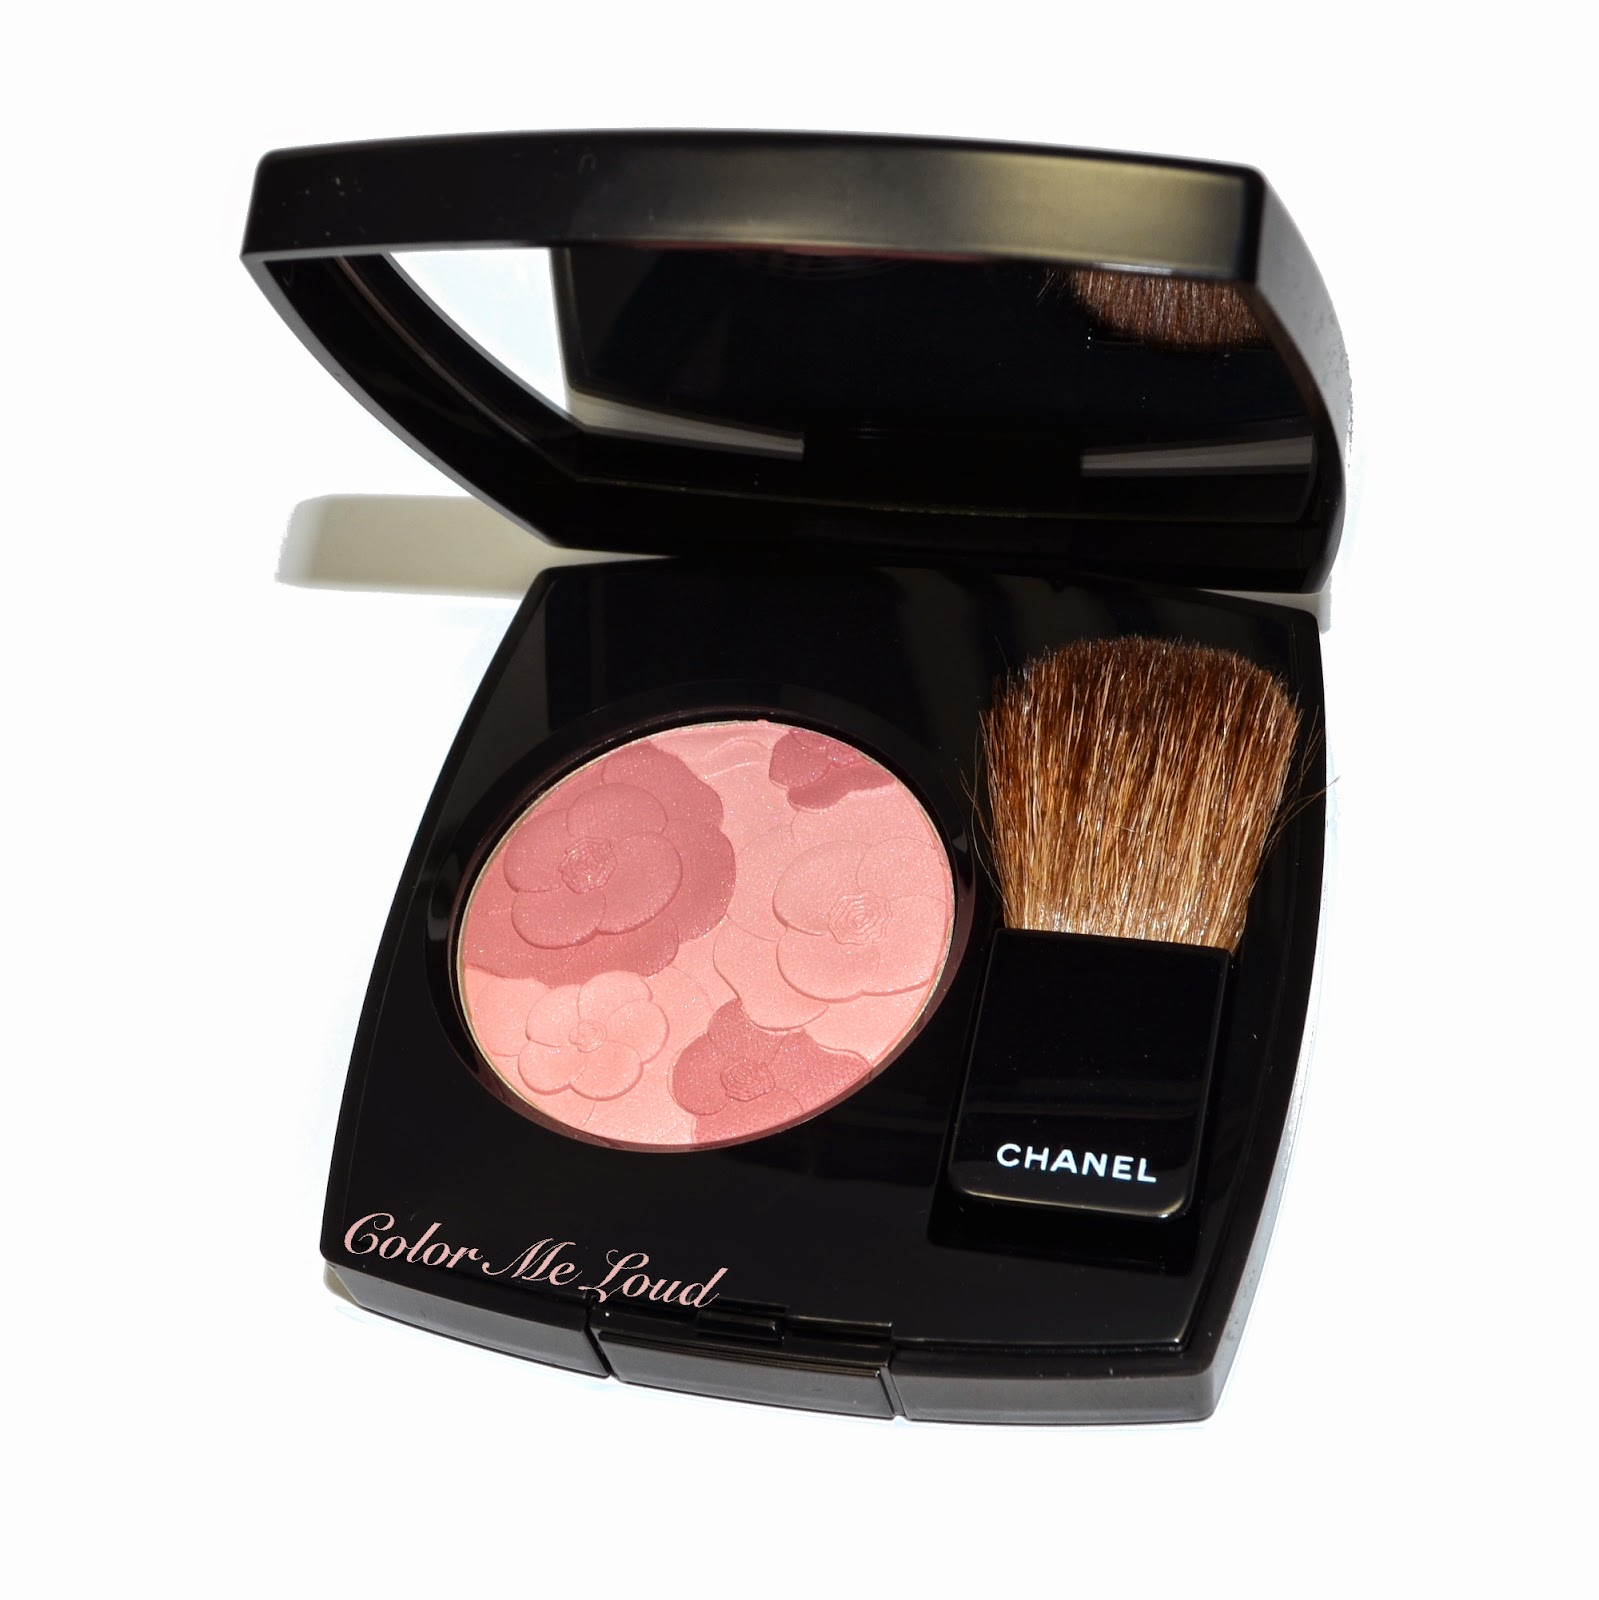 Chanel jardin de chanel blush camelia rose joues for Jardin de chanel blush 2015 kaufen